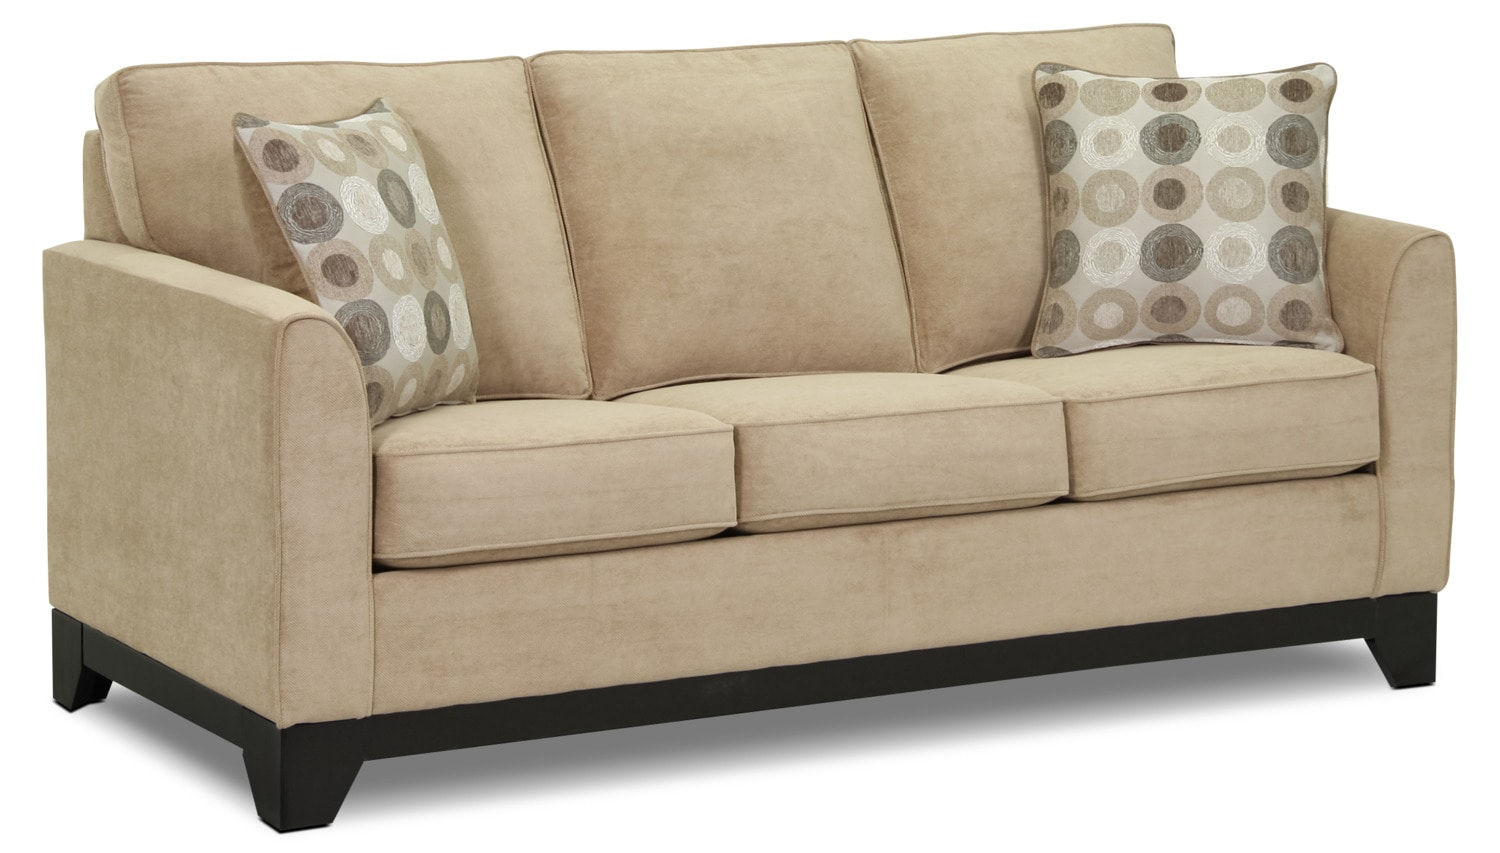 Sofa Bed griffin full sofabed - beige | leon's